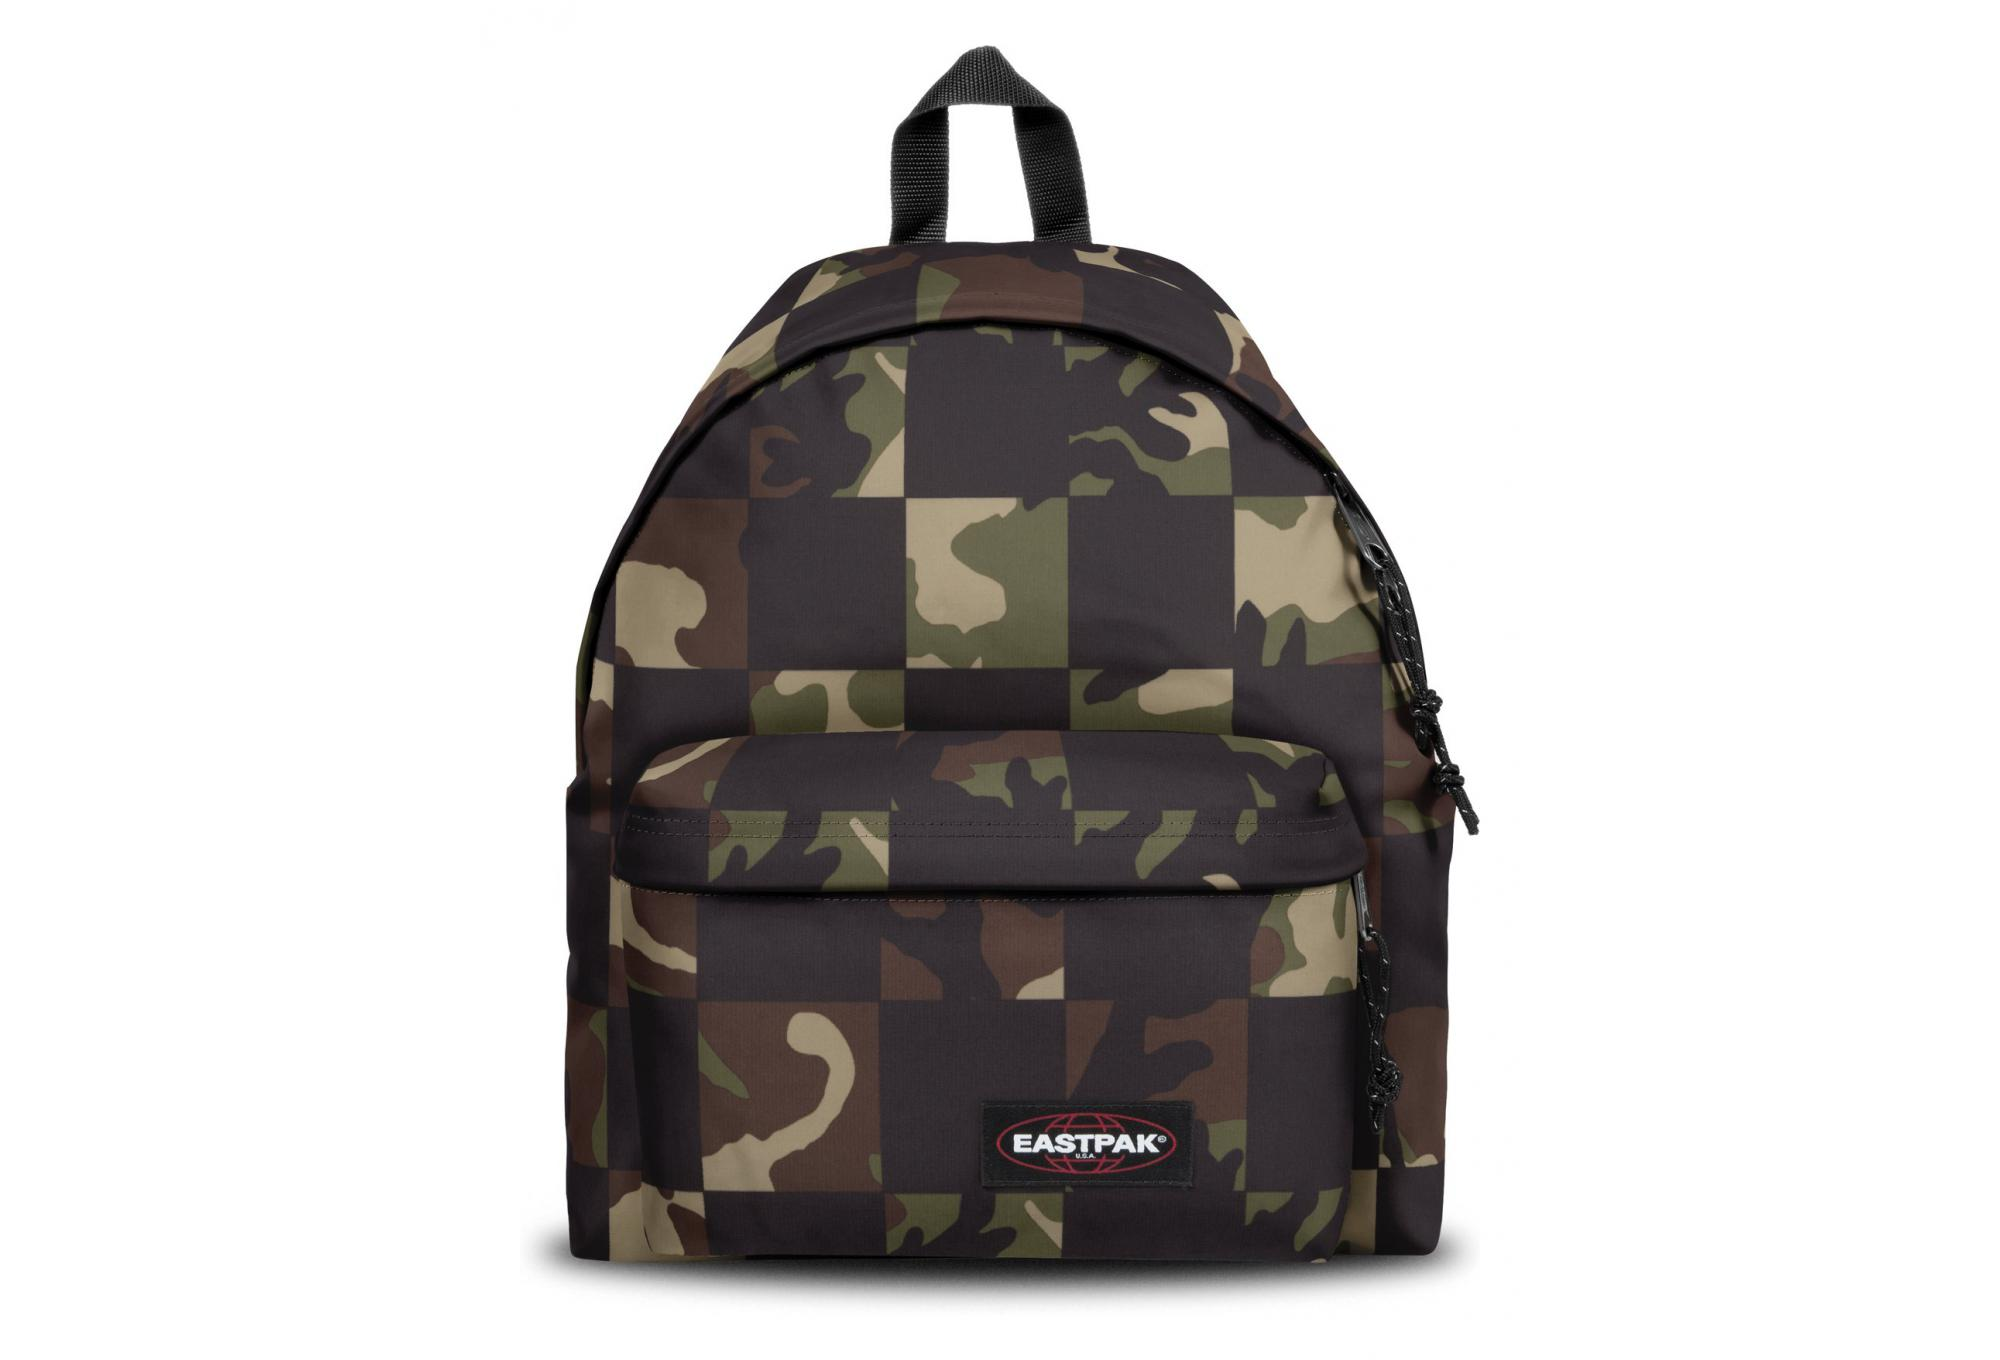 Eastpak Padded Pak R Backpack Camopatch Black